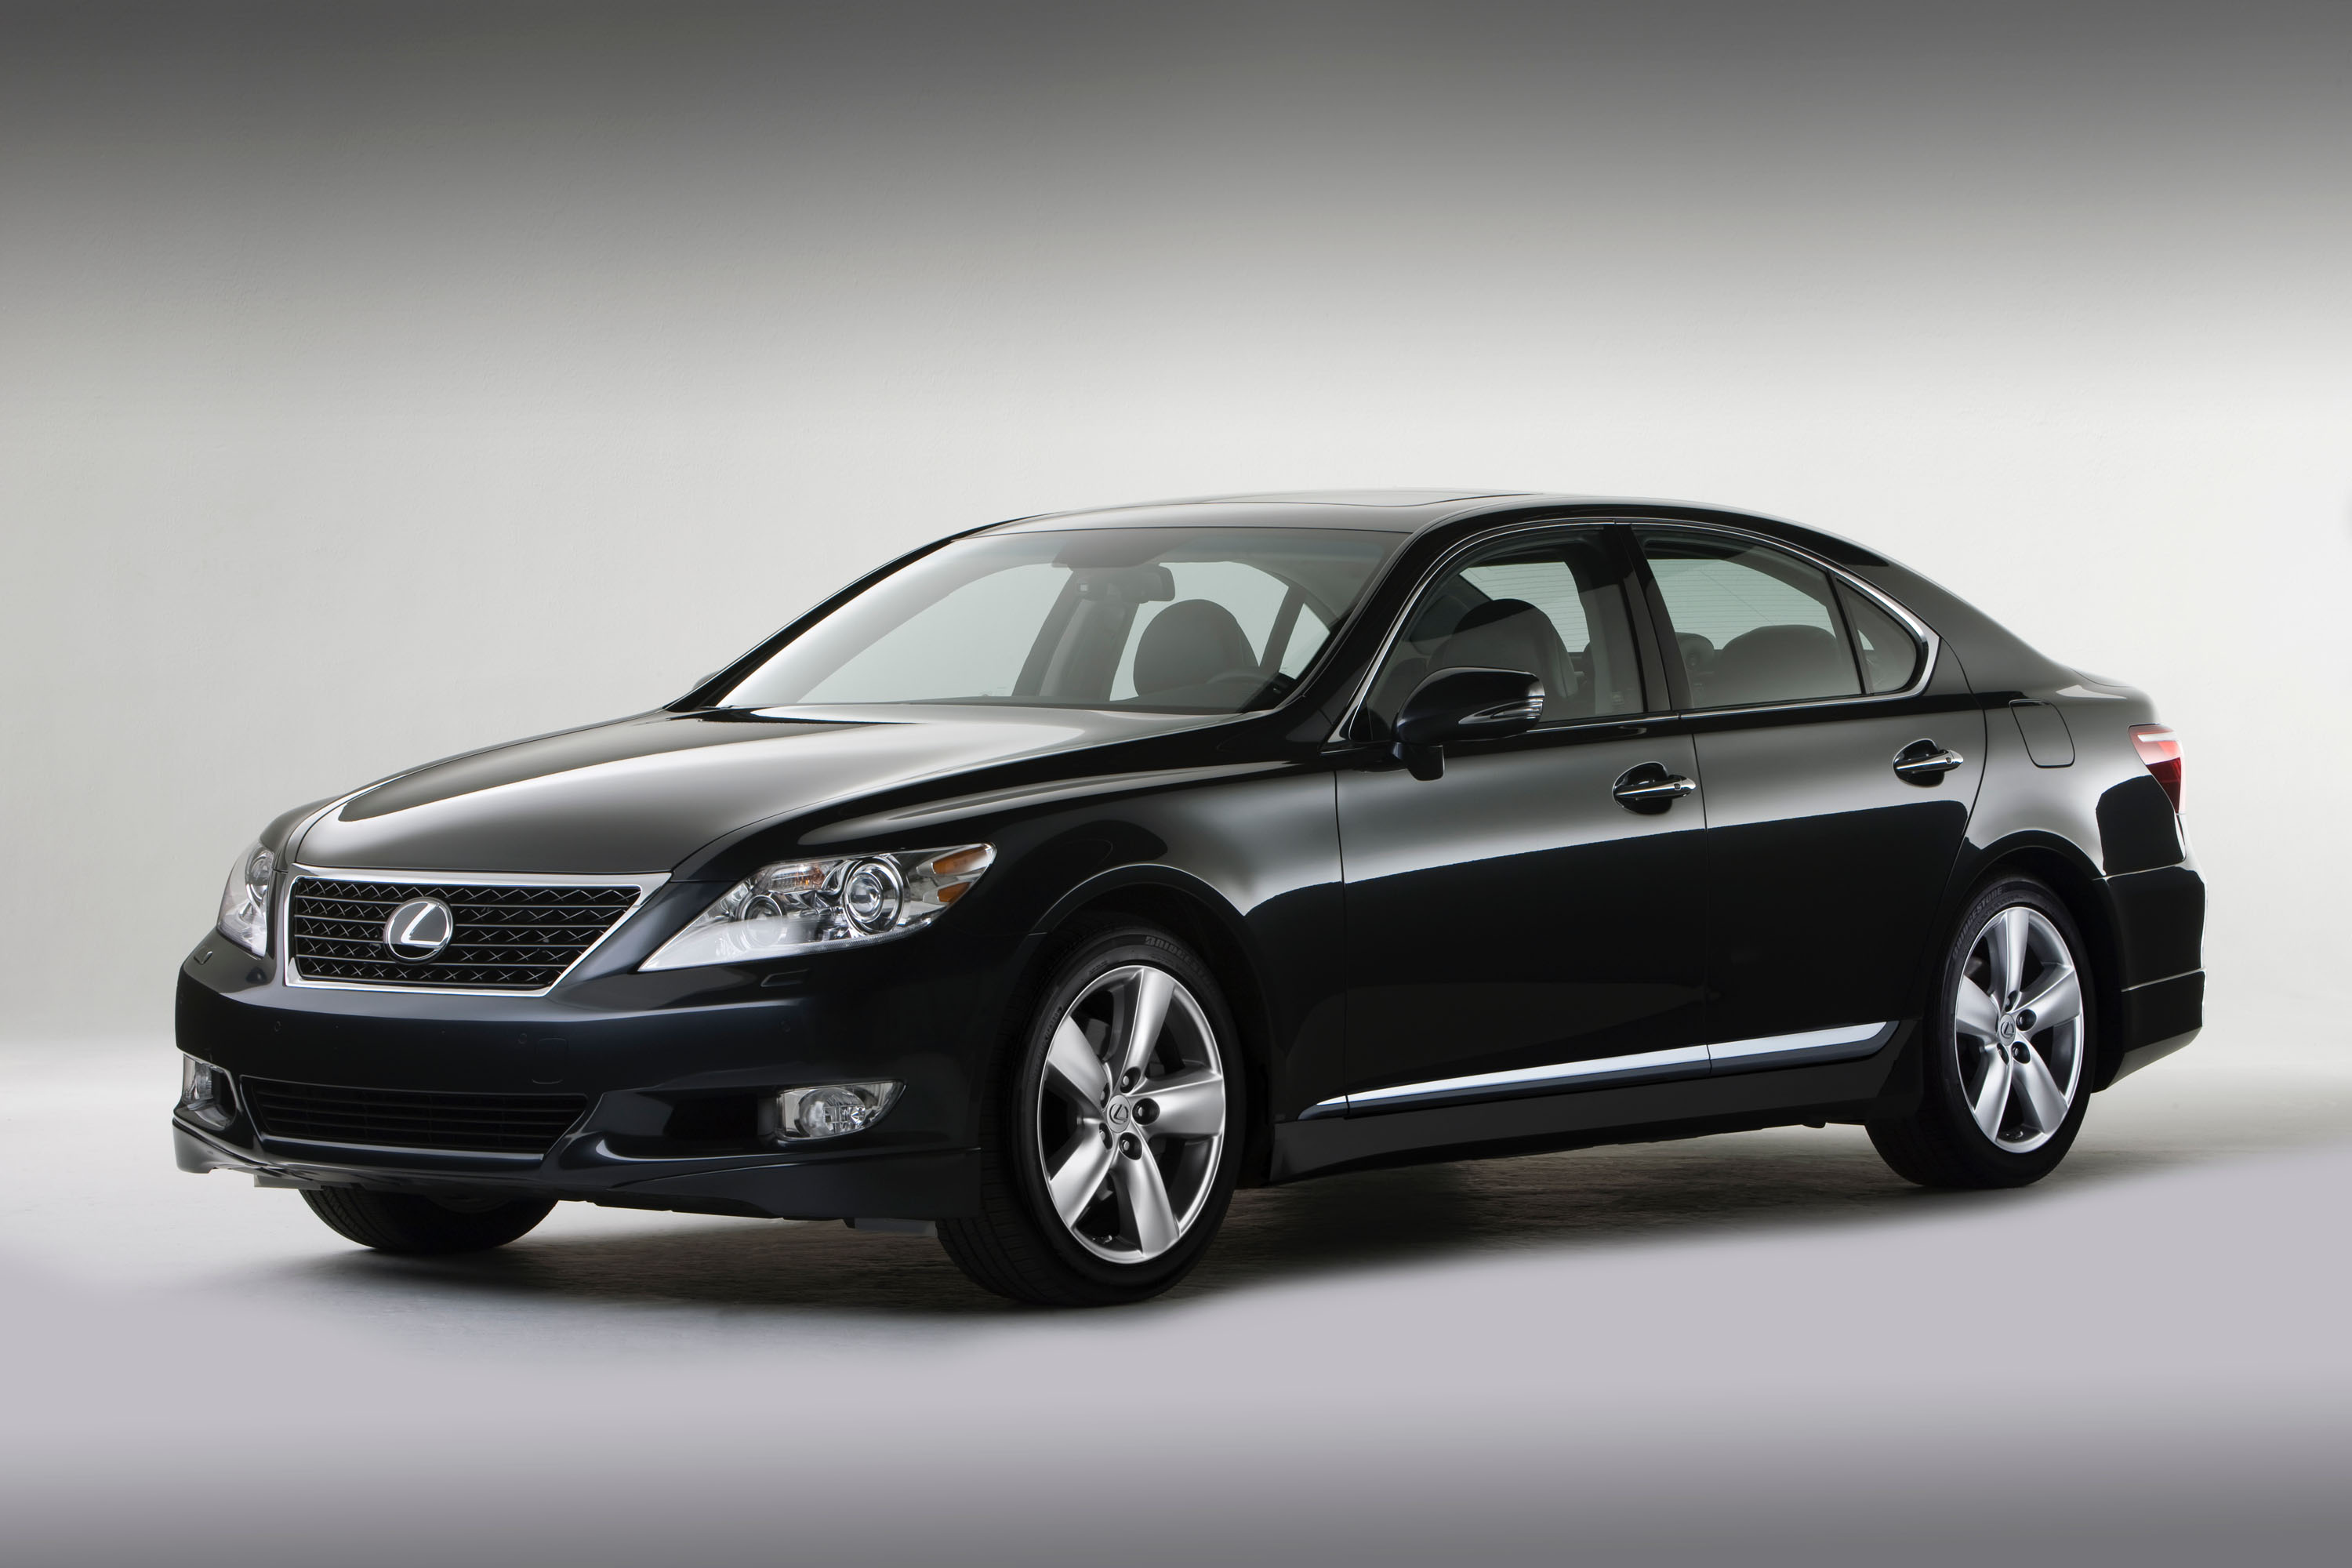 2011 Lexus LS 460 Touring Edition Priced From $73 000